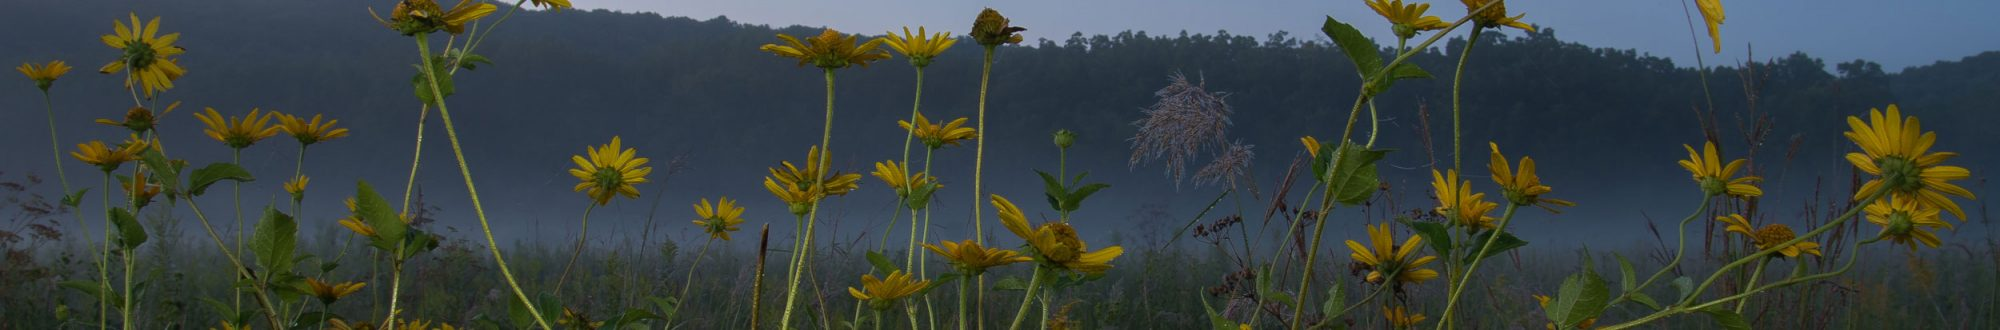 Misty sunflowers at Forestville-Mystery Cave State Park